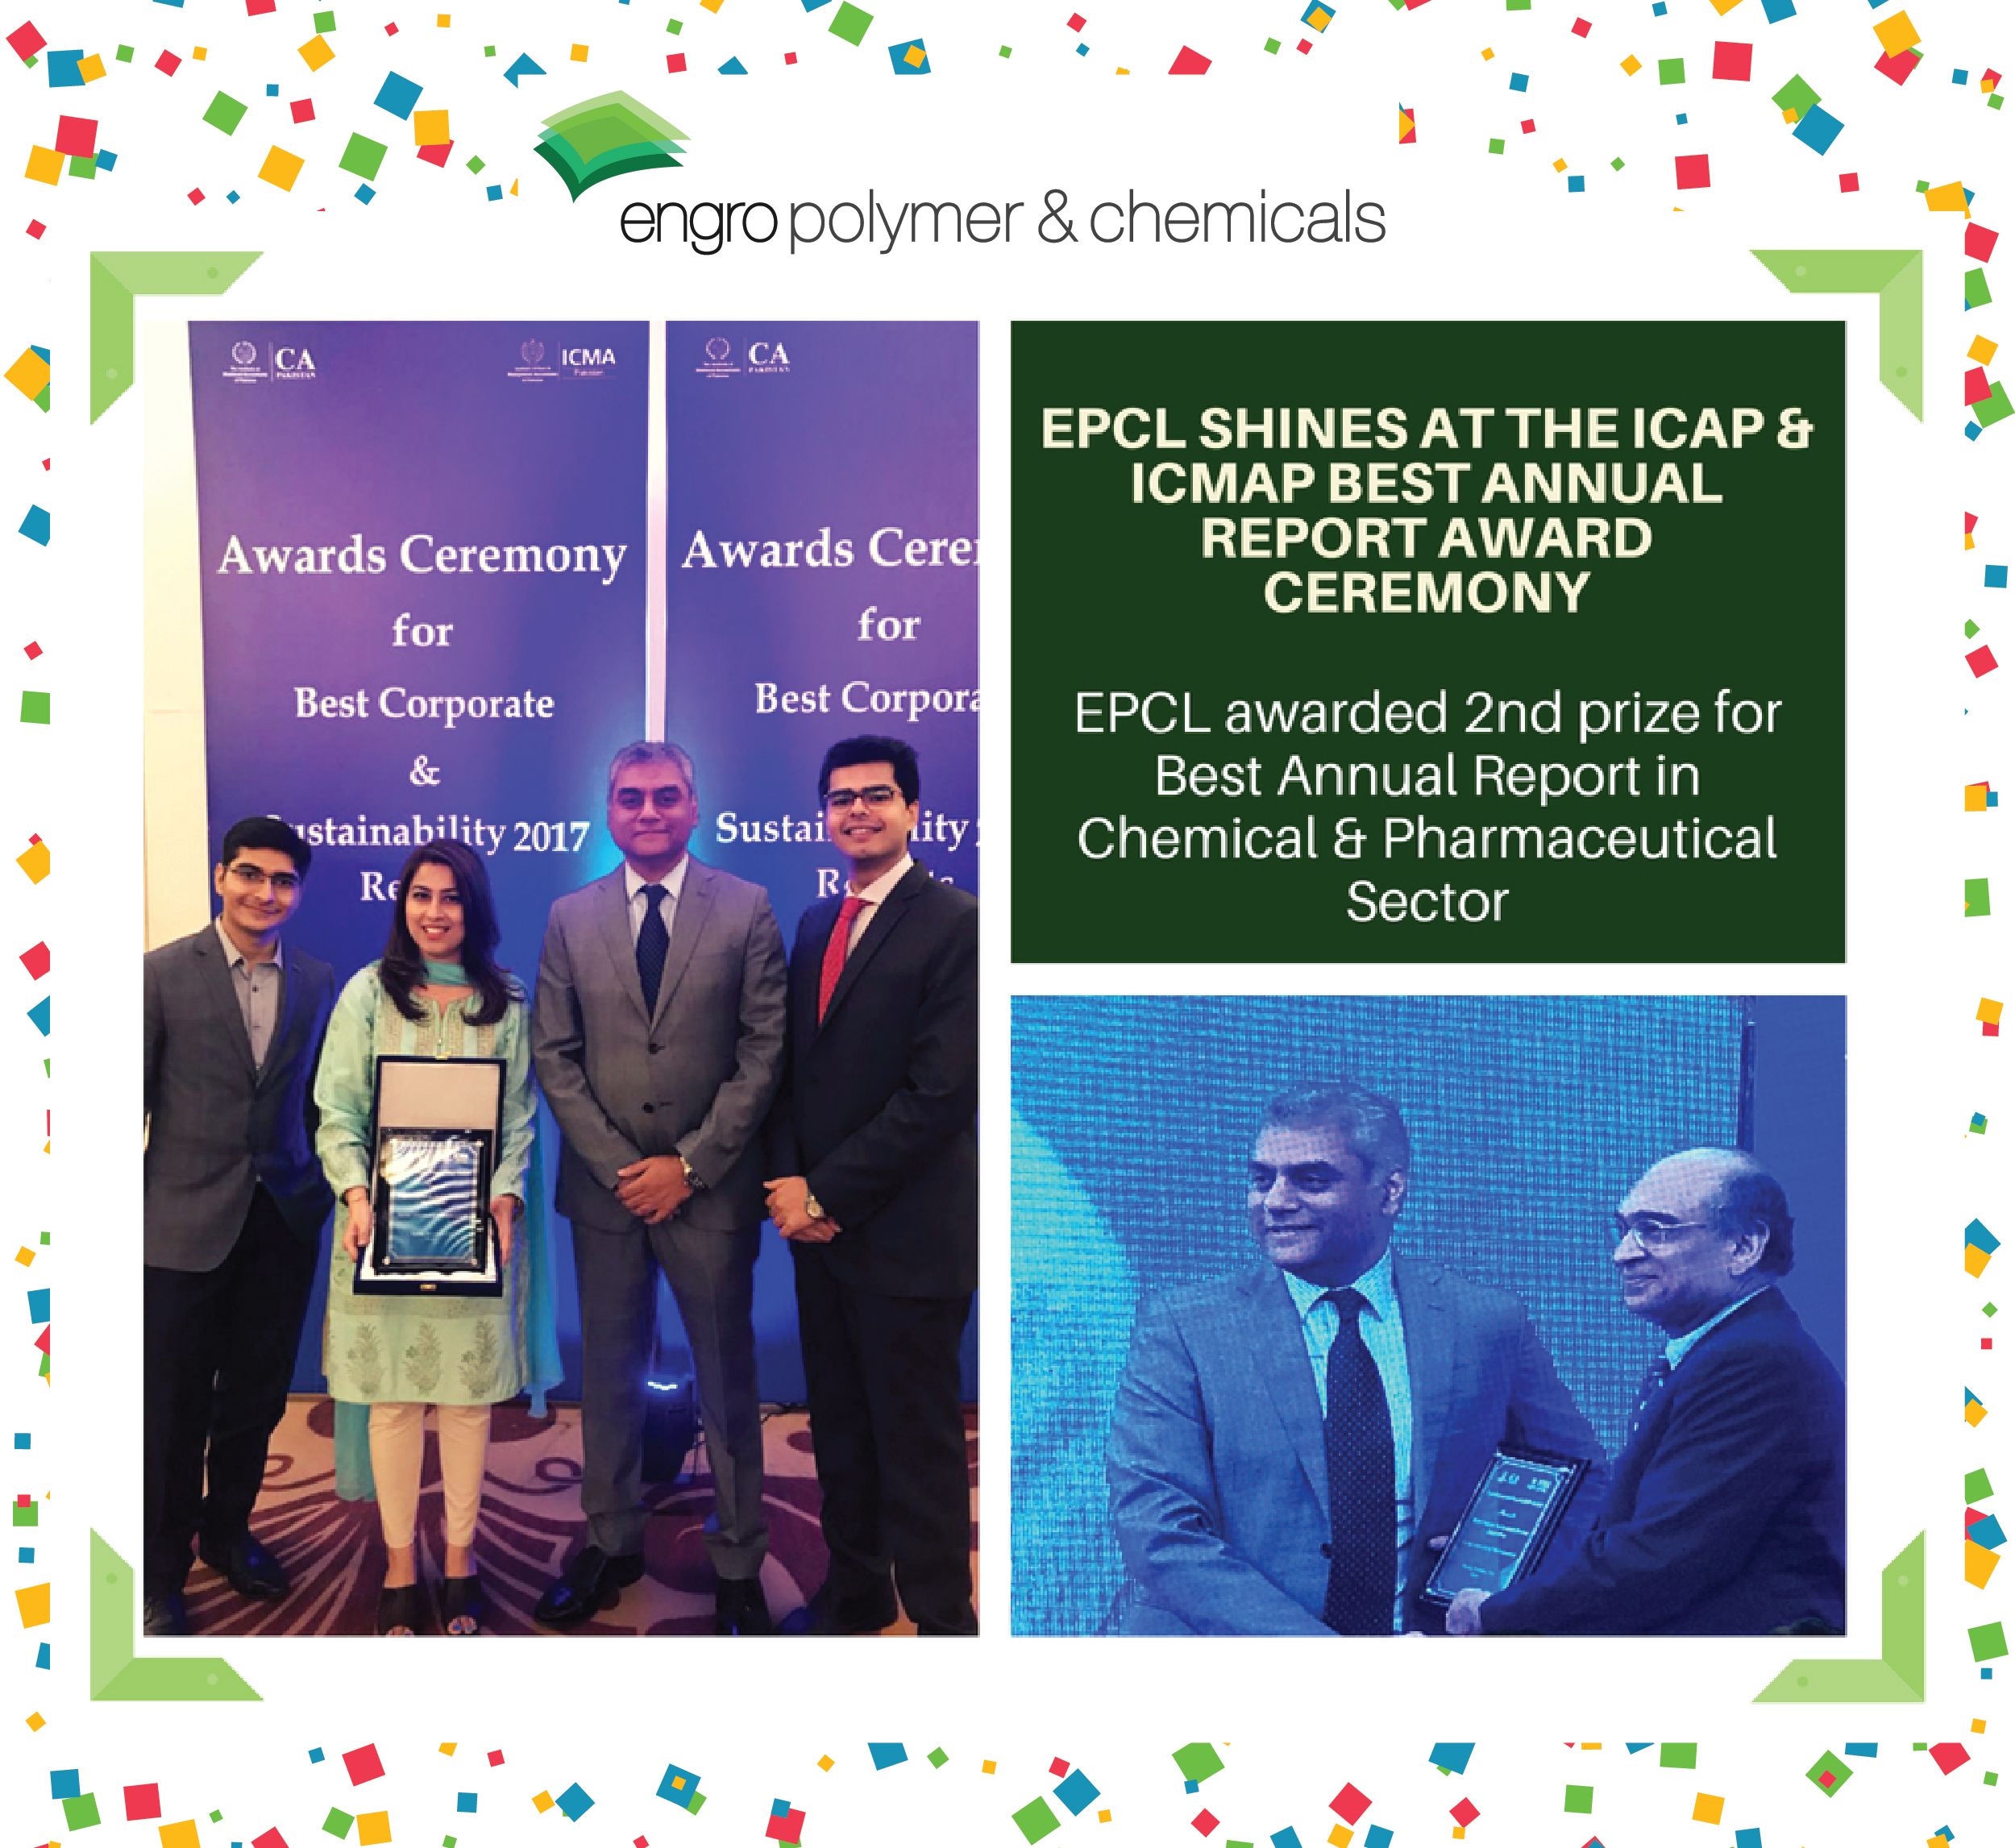 EPCL shines at the ICAP & ICMAP Best Annual Report Award Ceremony